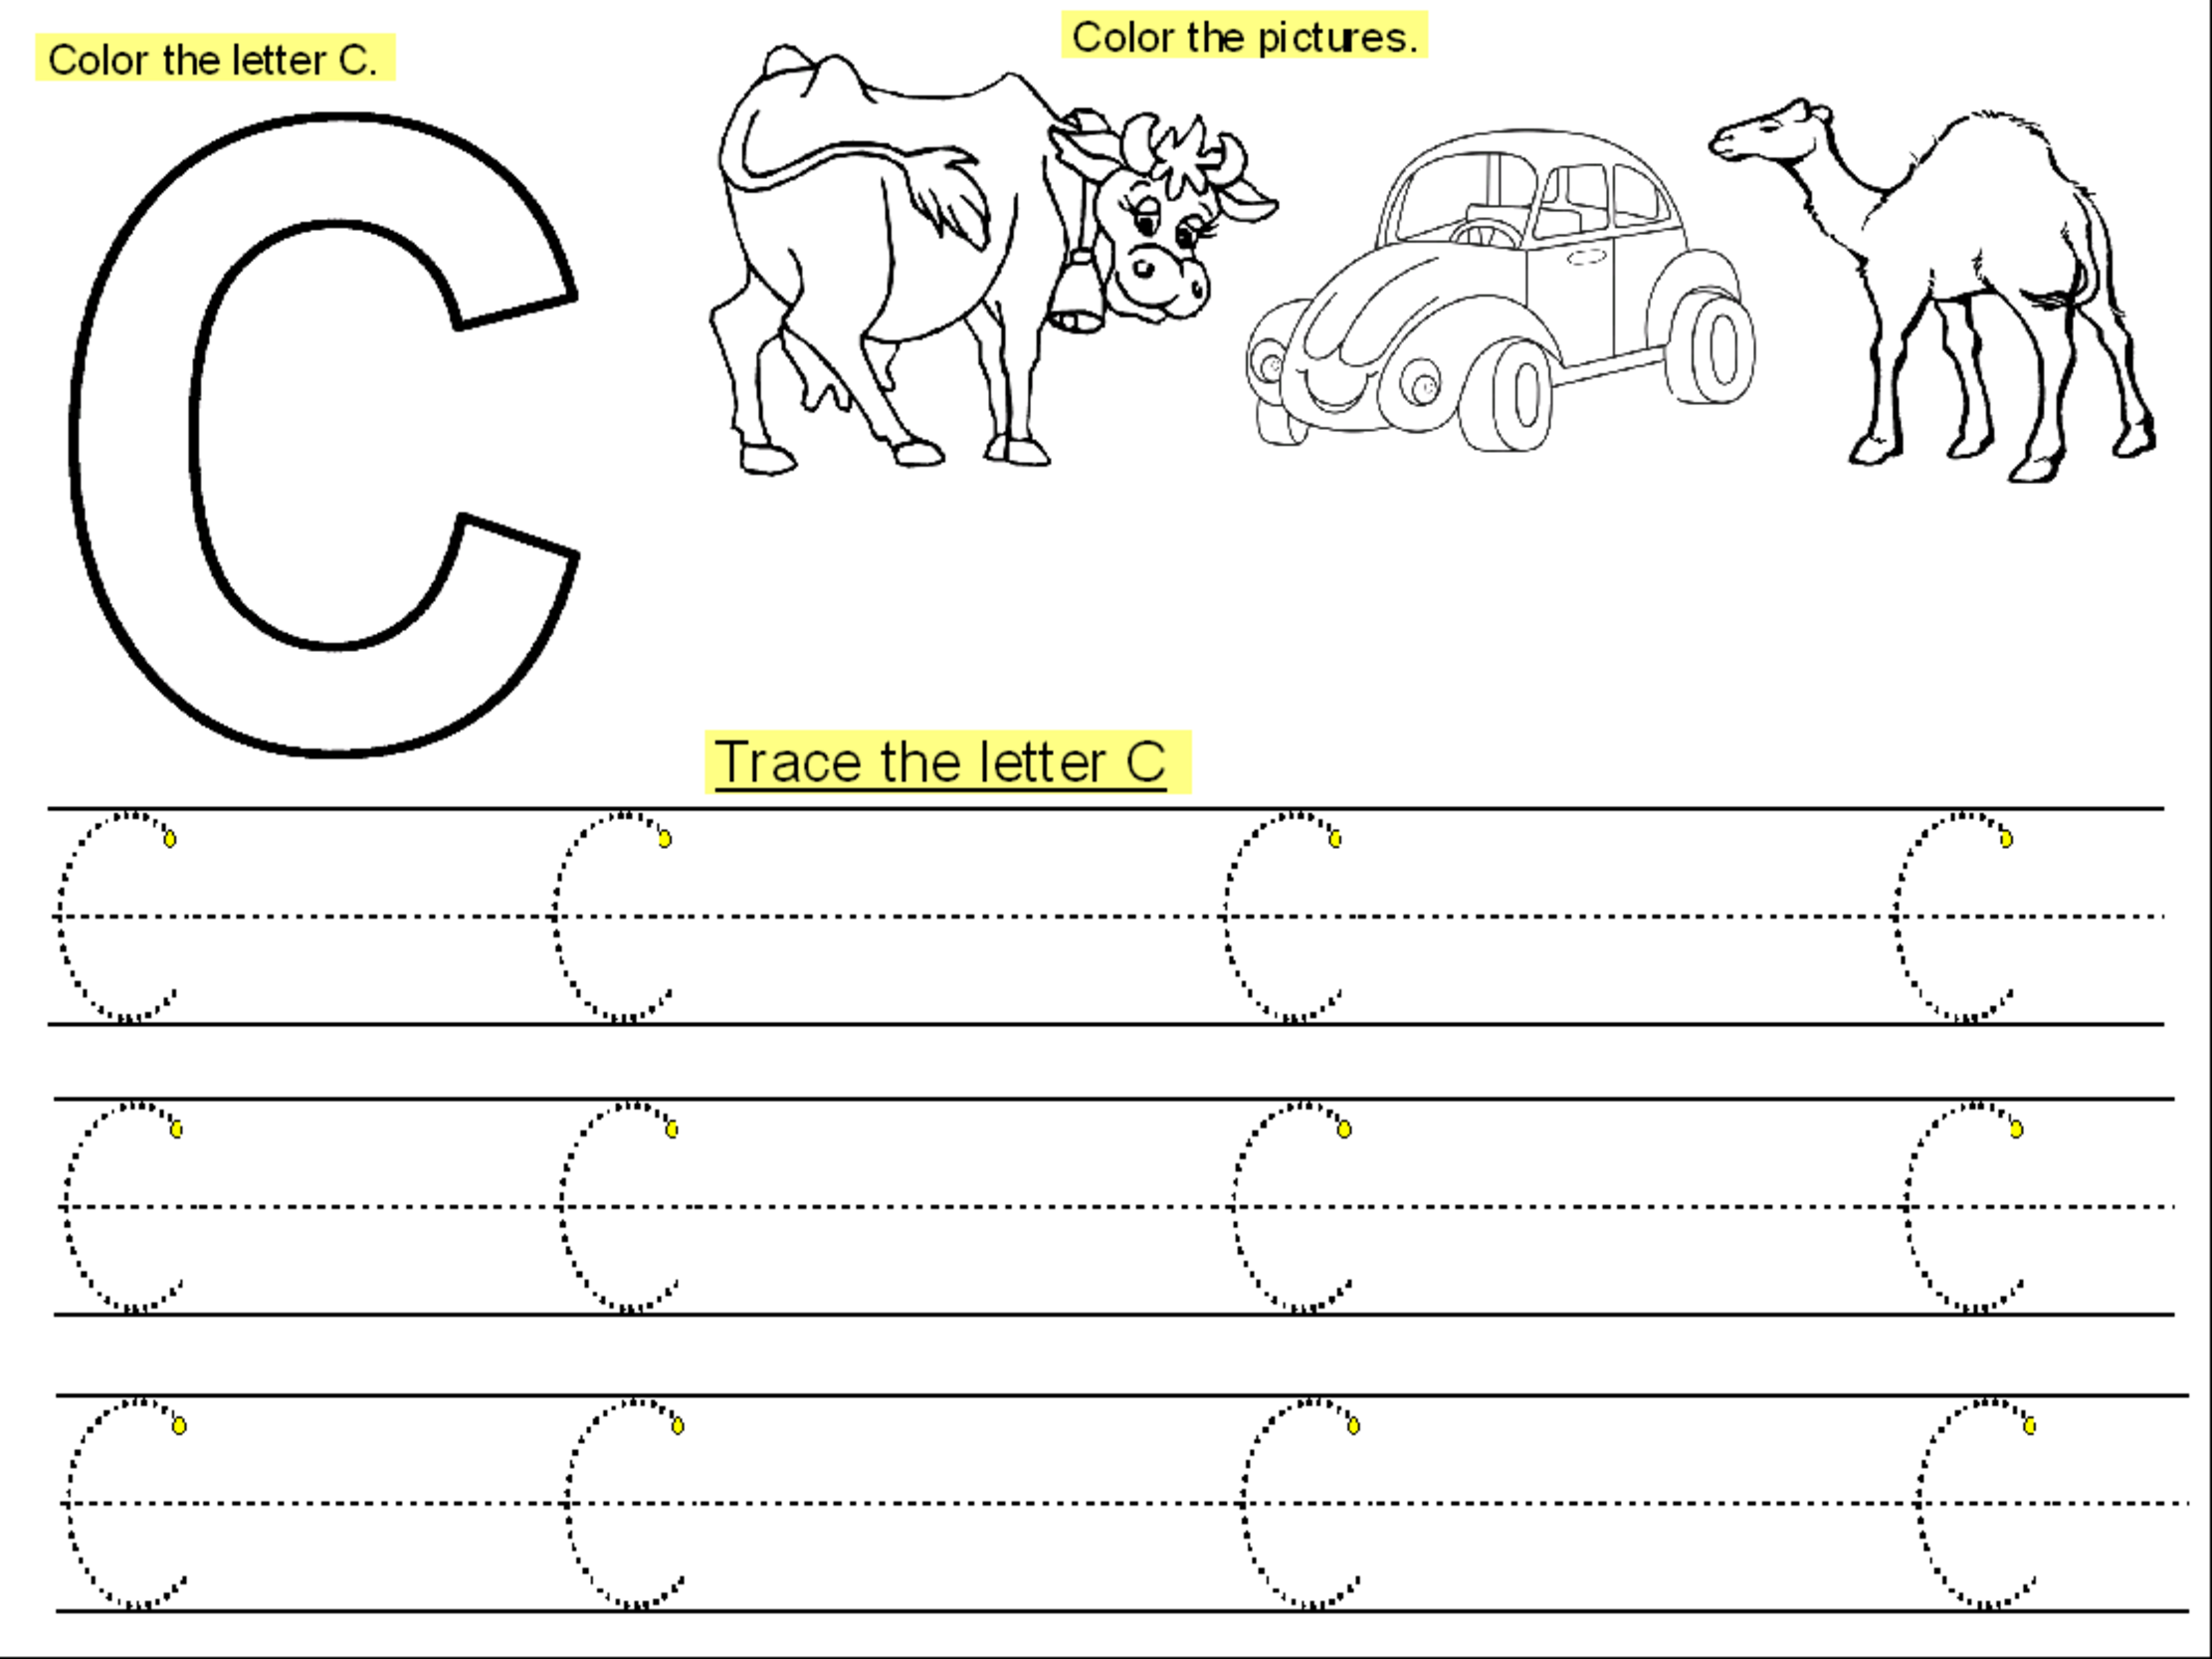 Worksheet Tracing The Letter C trace the alphabets worksheets activity shelter alphabet c letter